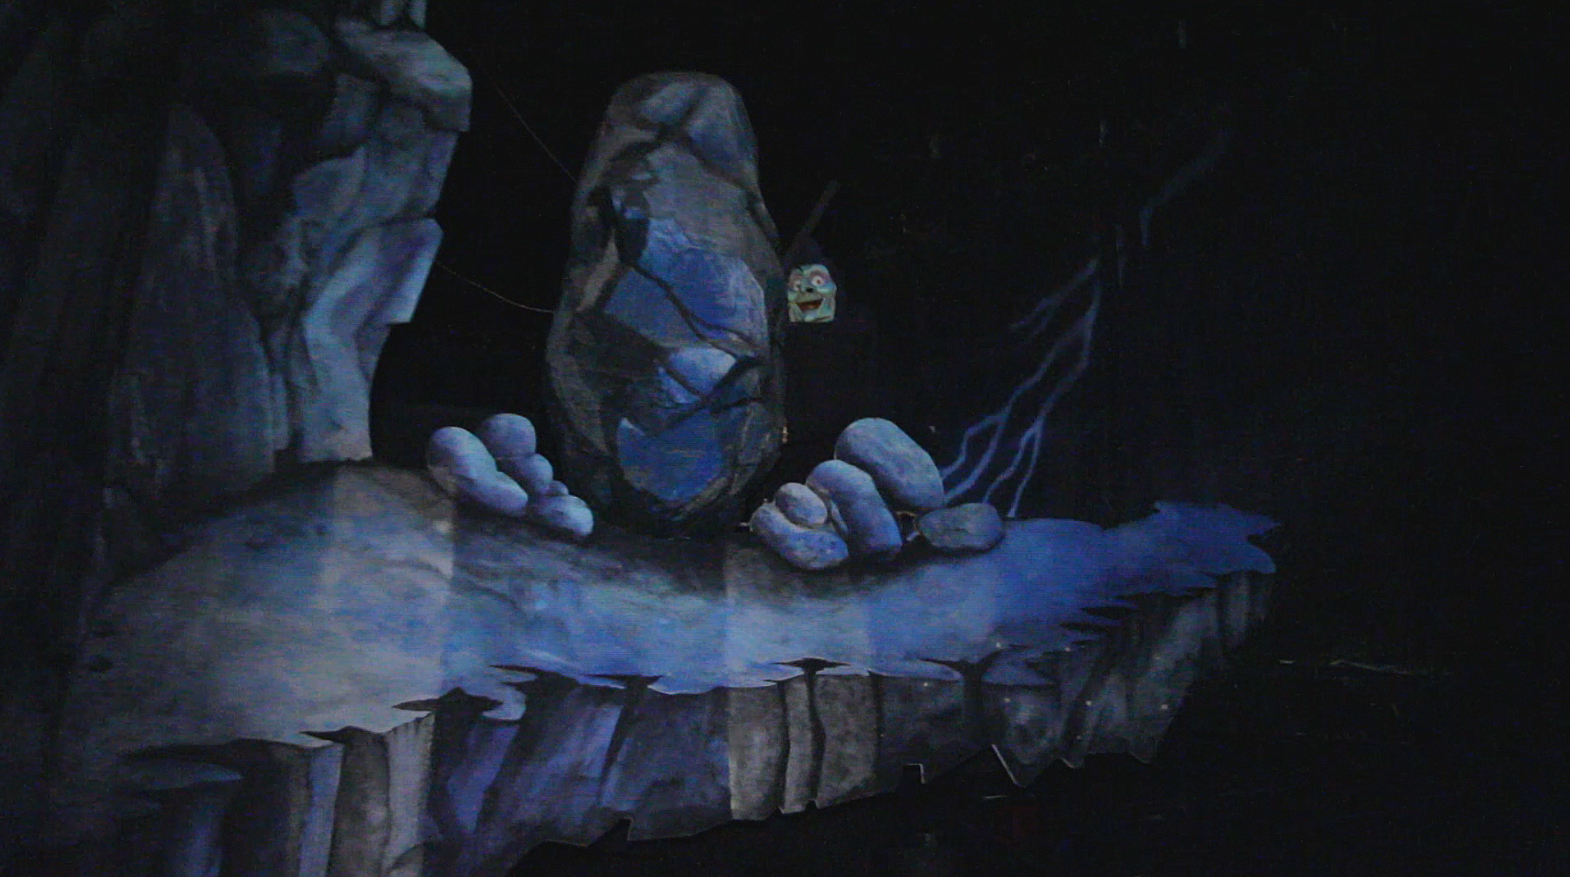 Filmic Light Snow White Archive Scary Adventure S The